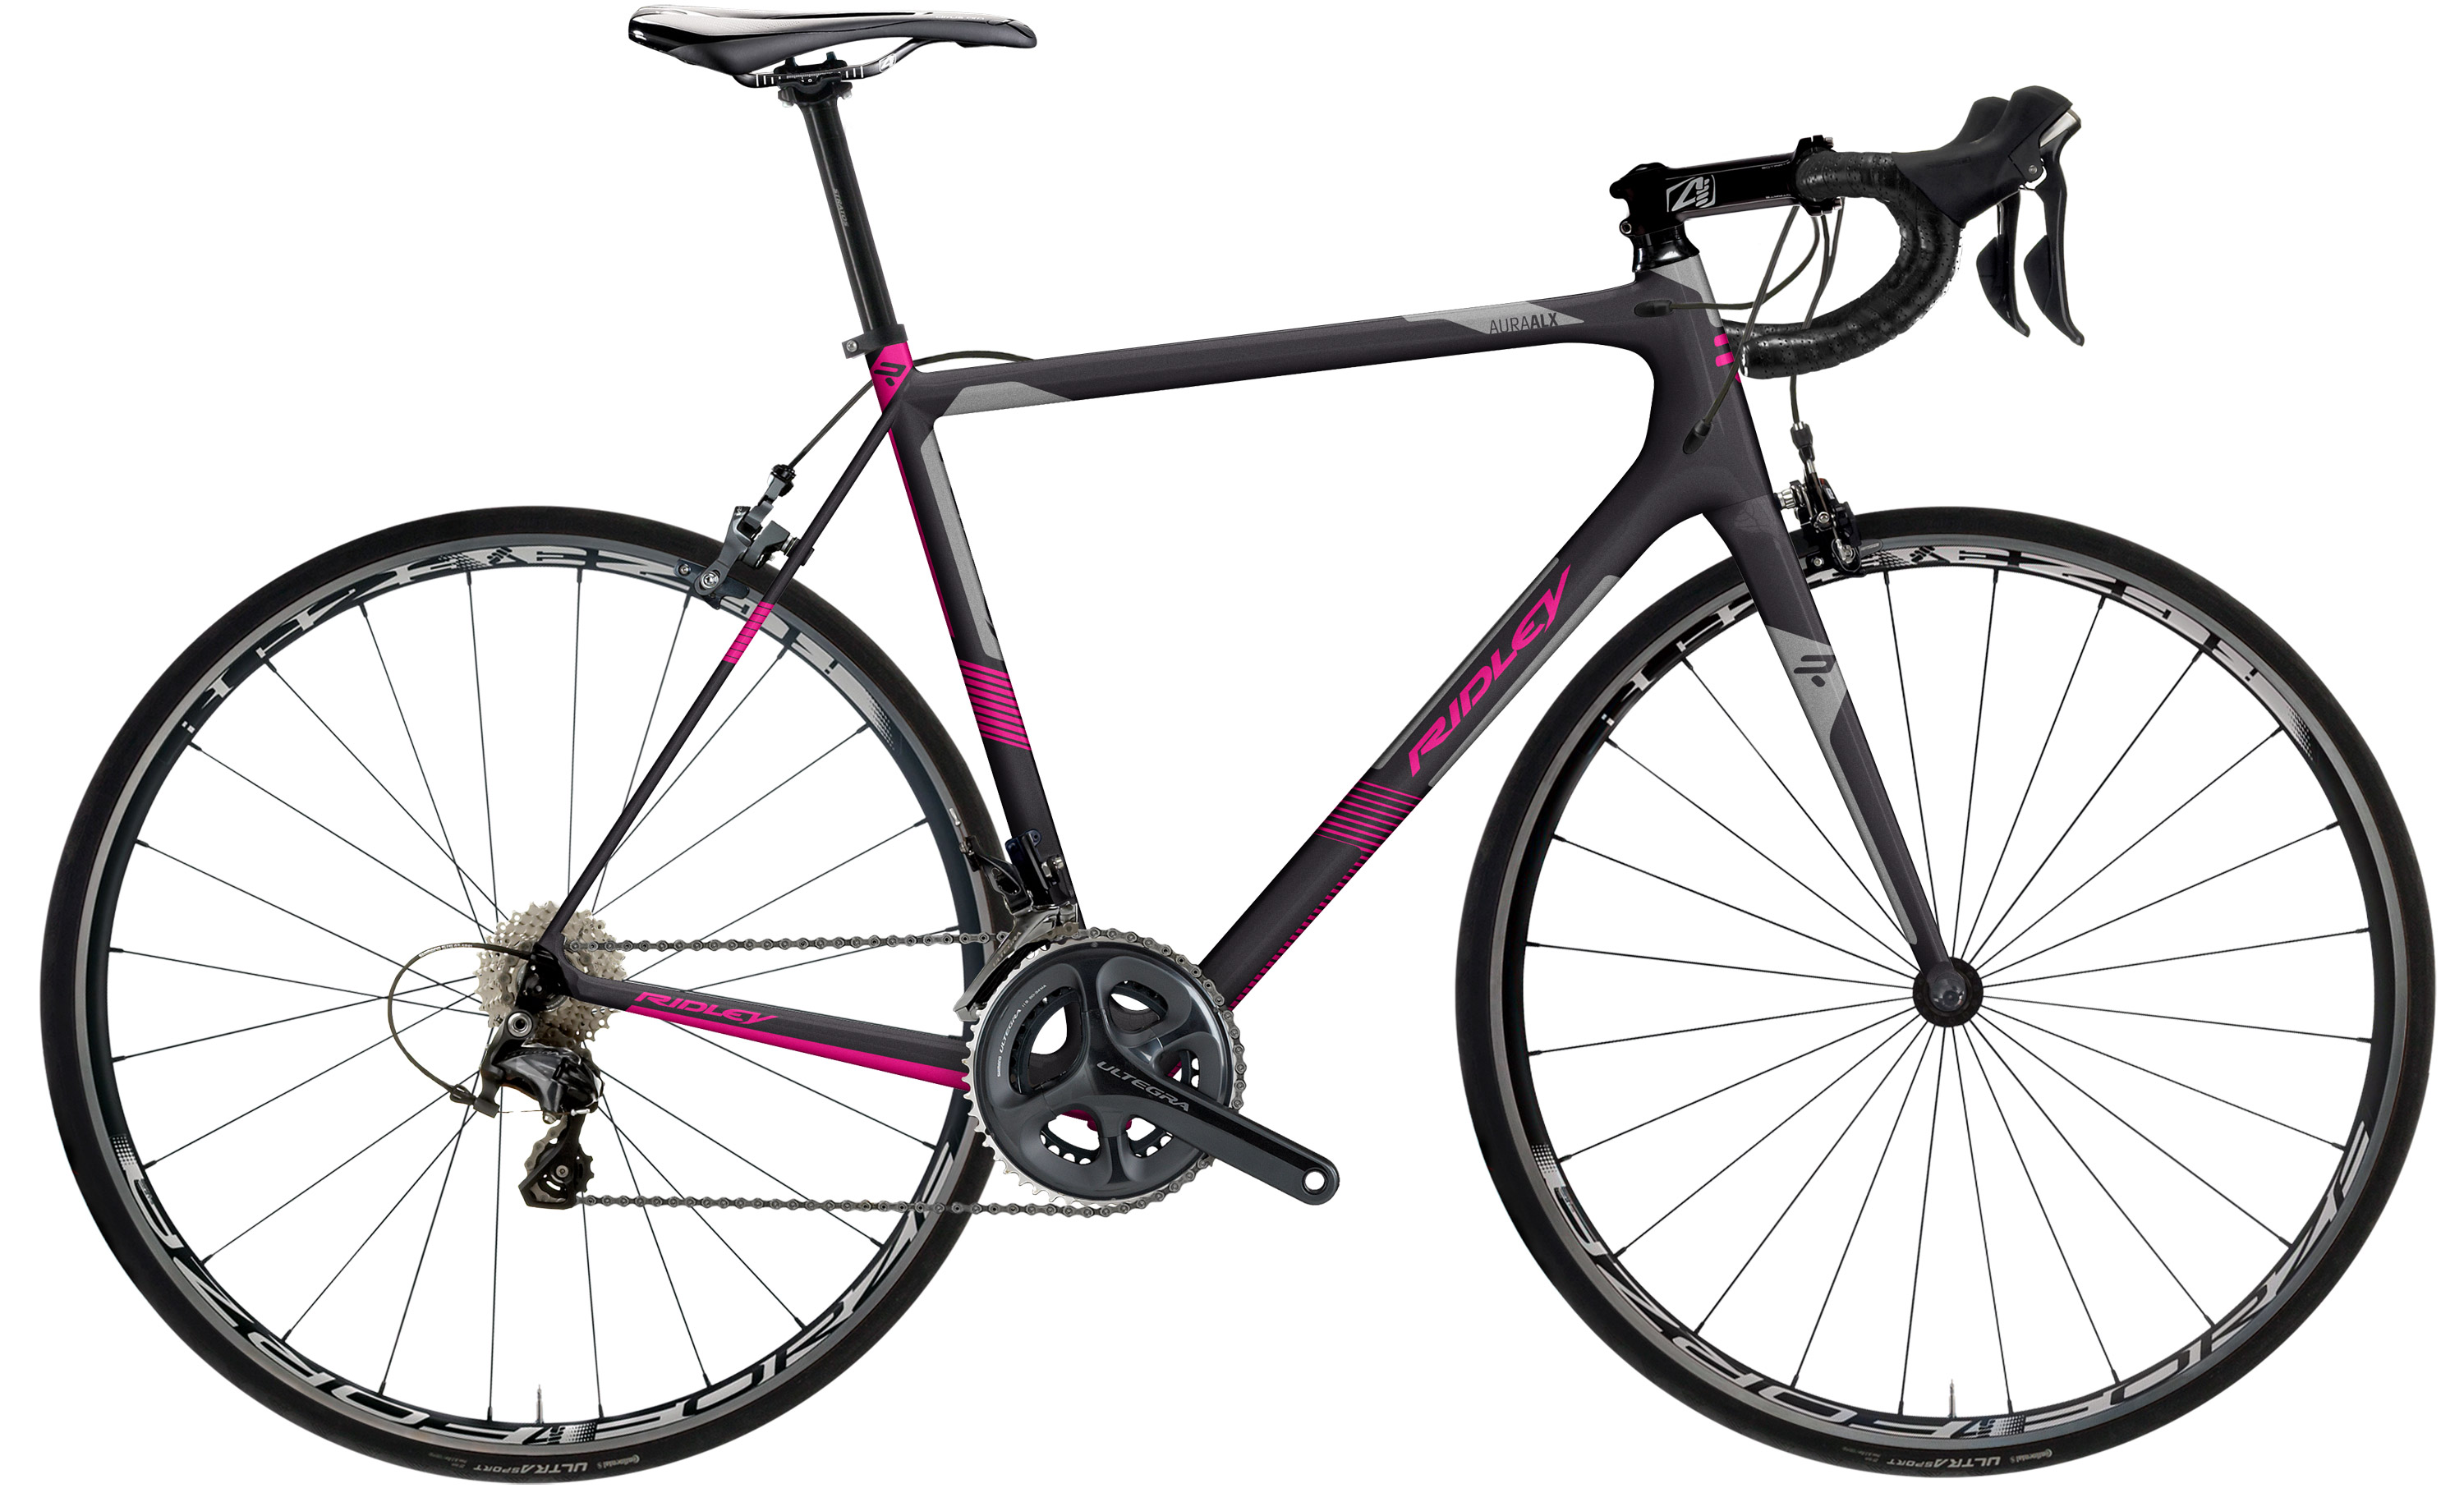 Eb16 Ridley Introduces New Premium Race Bike Range For